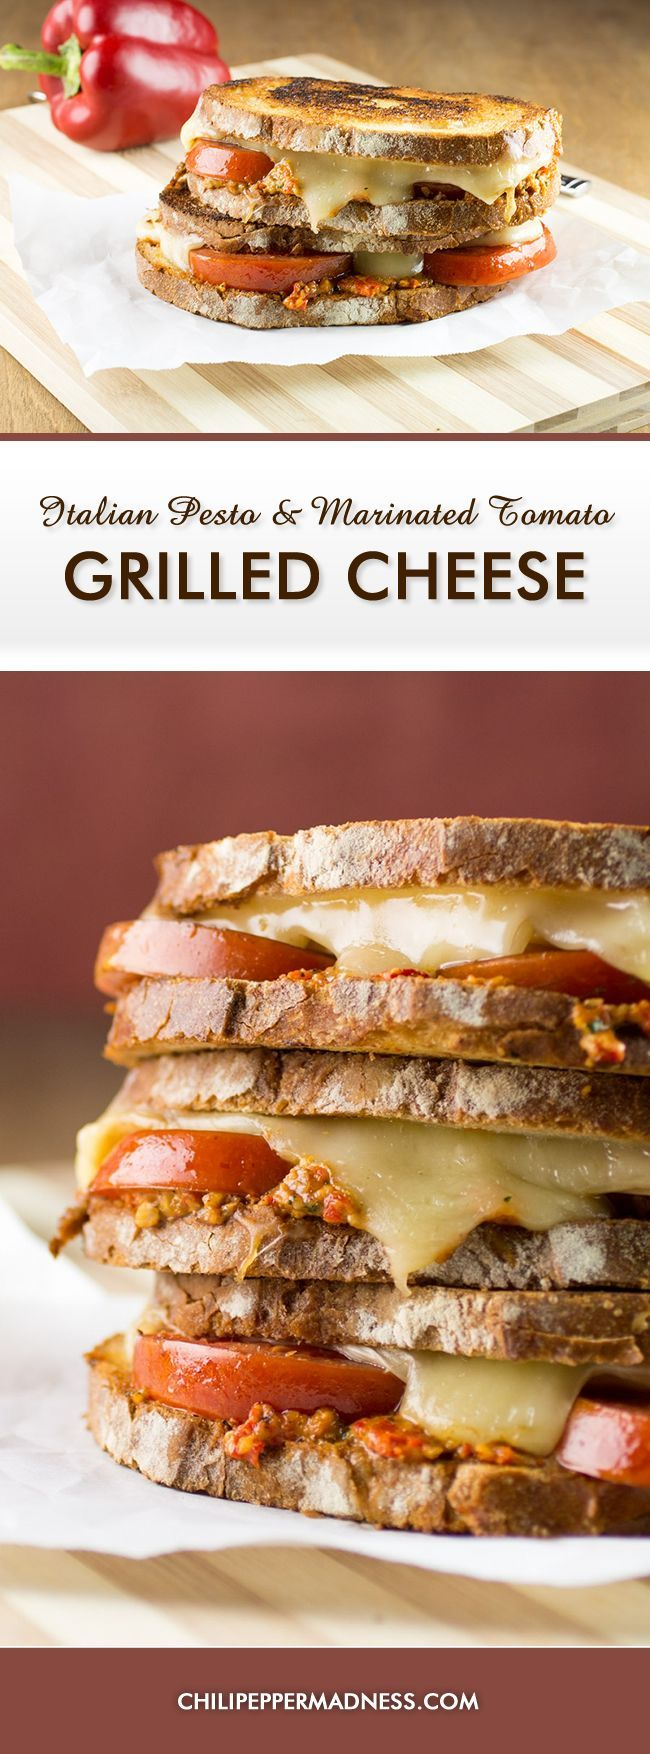 Grilled Cheese Sandwich made with Italian Pesto and Marinated Tomato - A comfort food classic grilled cheese recipe with an Italian spin.